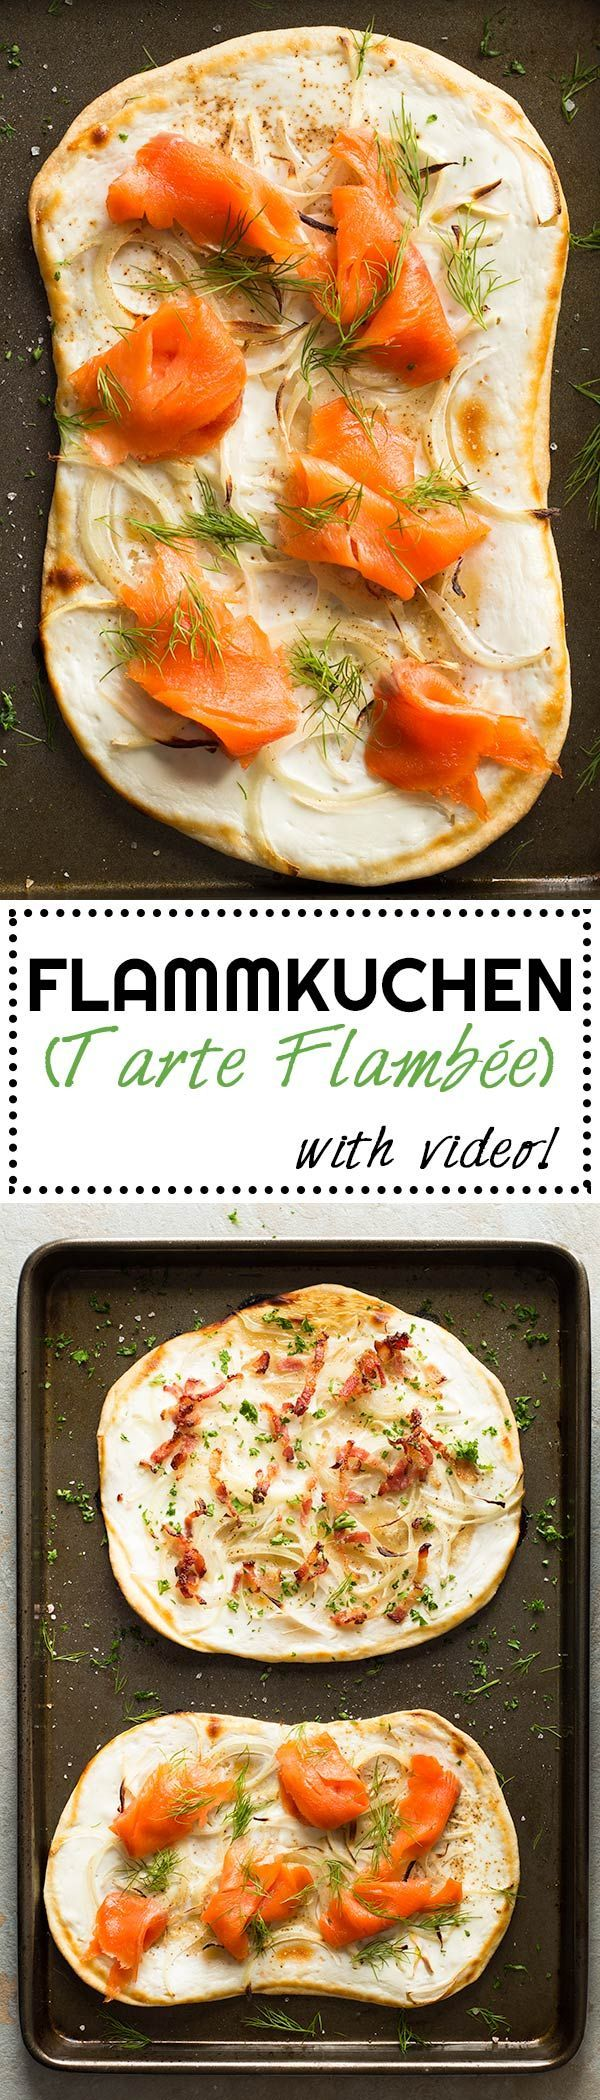 Flammkuchen a.k.a. Tarte Flambée, a.k.a. German Pizza, a.k.a French Pizza. Call it what you want, one thing is for sure, it is BEYOND DELICIOUS! via @greenhealthycoo